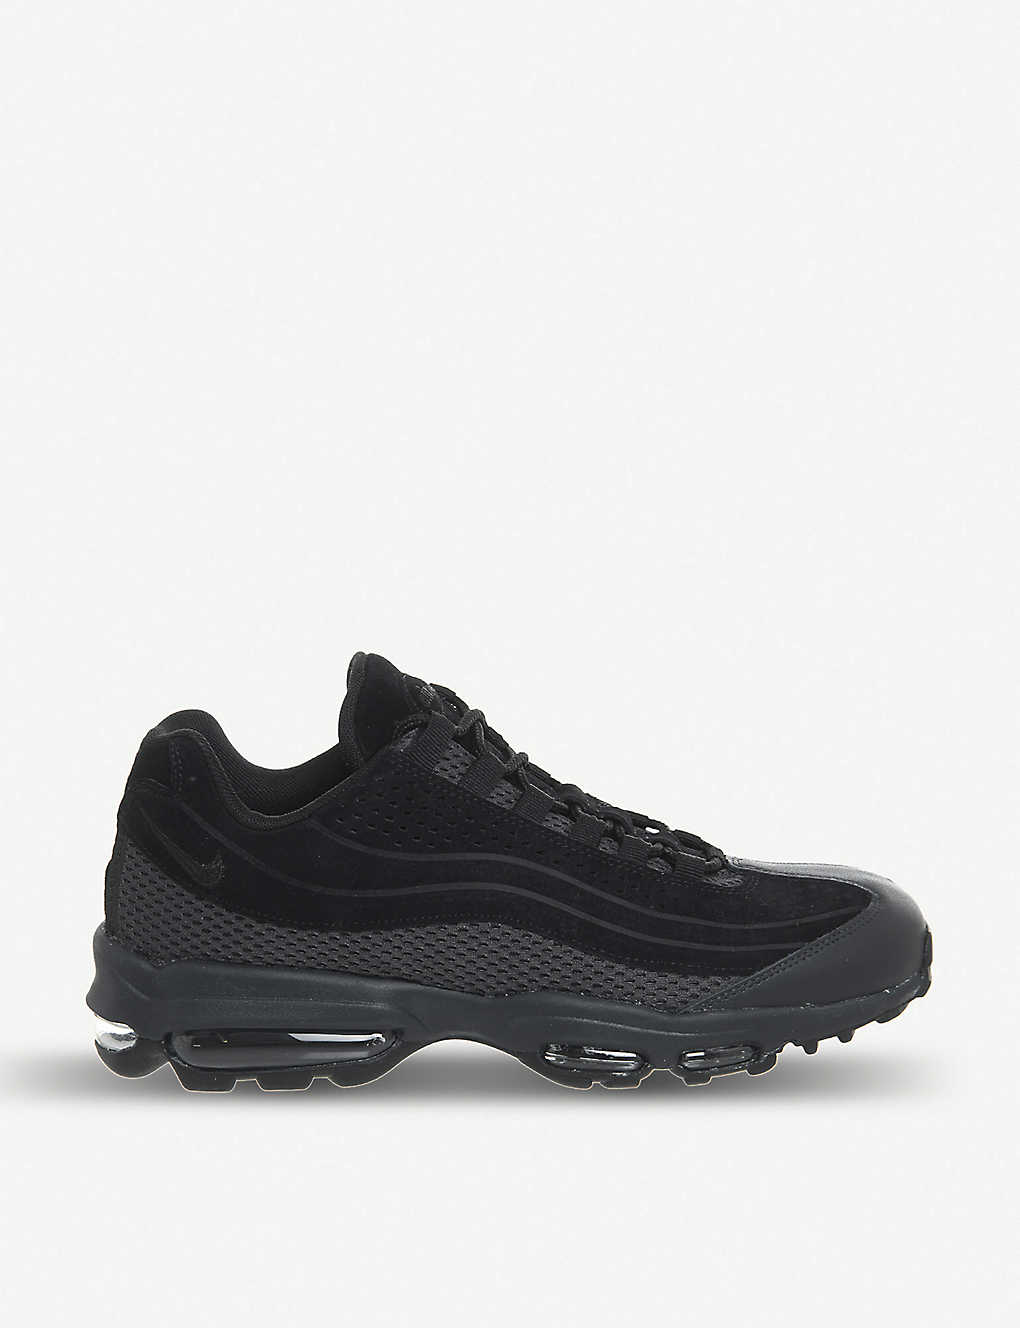 detailed look 96535 3a199 Air Max 95 Ultra suede and mesh trainers - Black ...